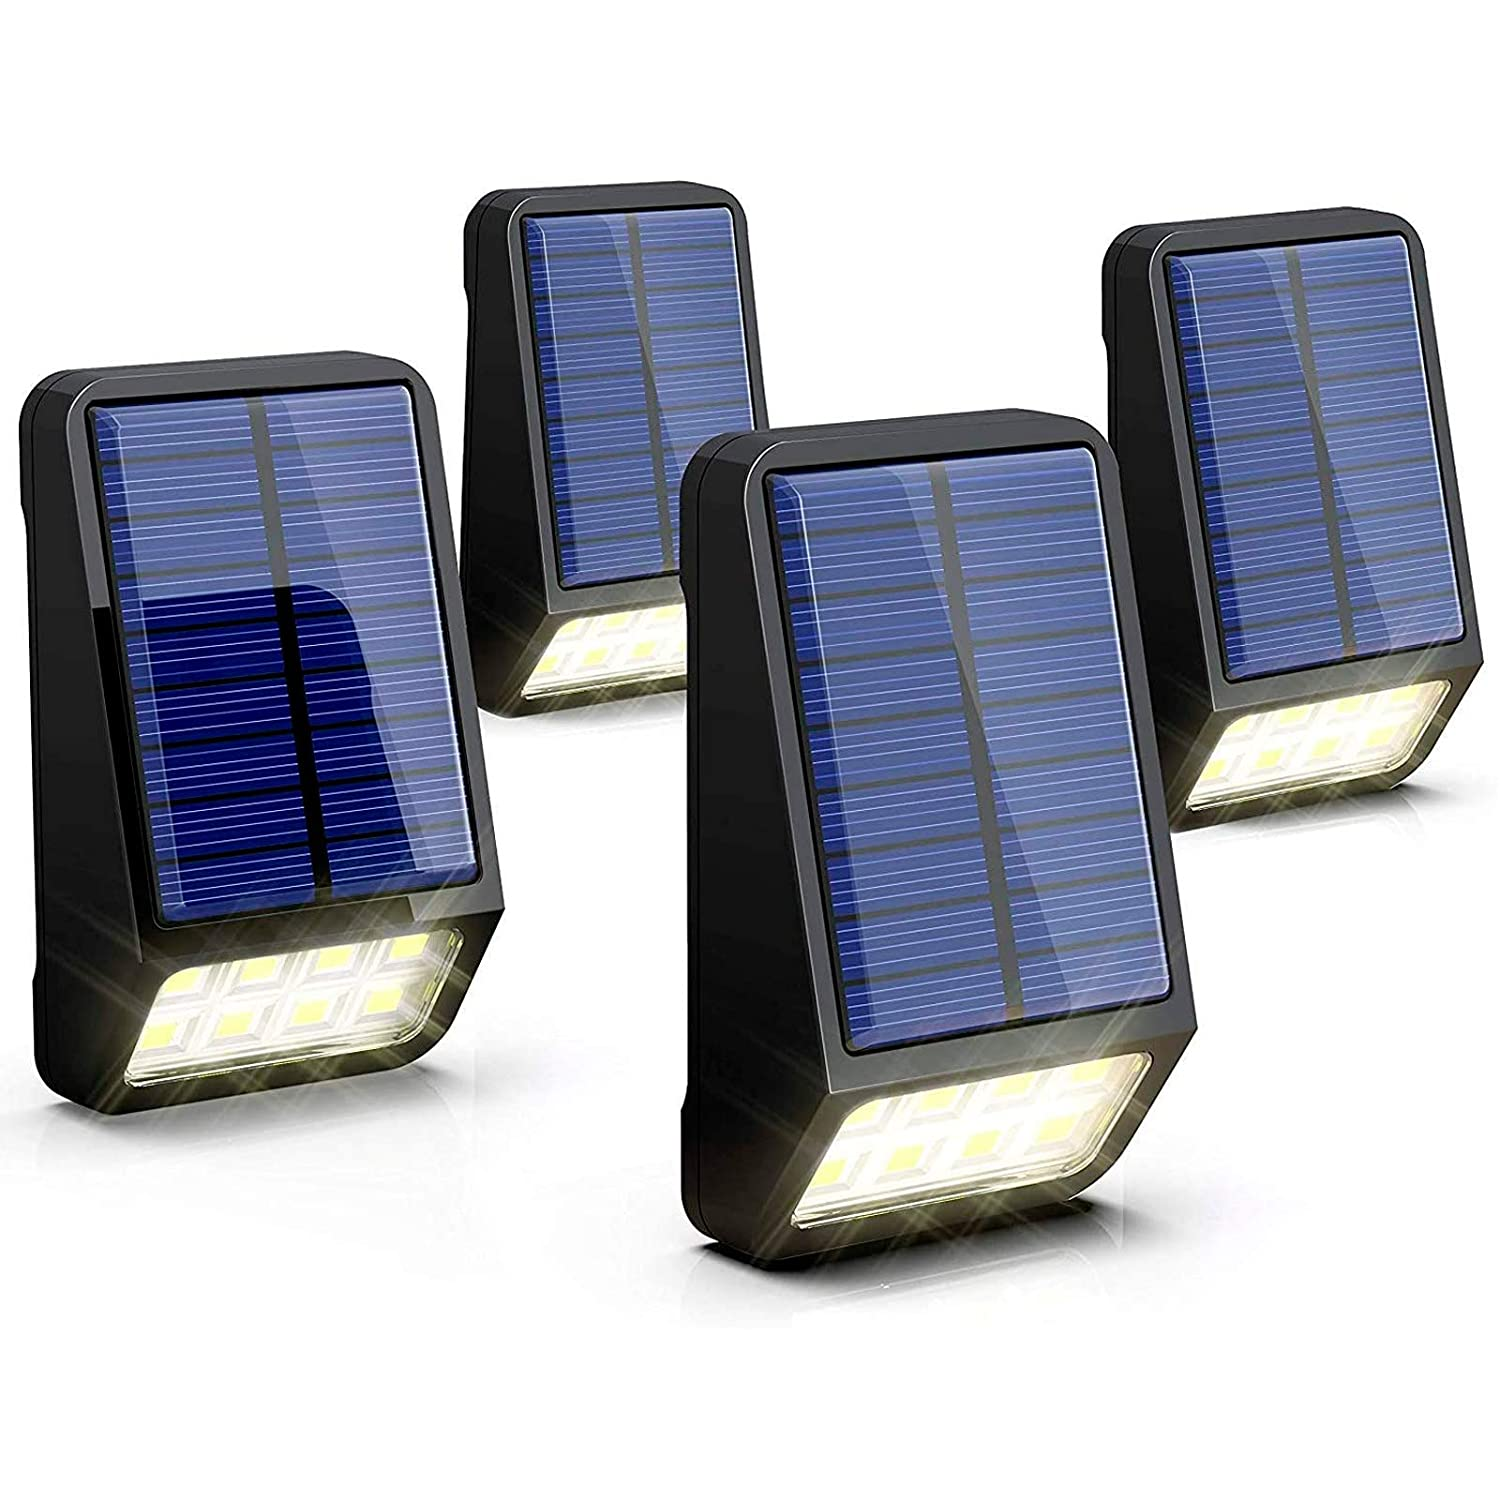 LOHAS Deck Post Solar Light can use as solar dusk to dawn light